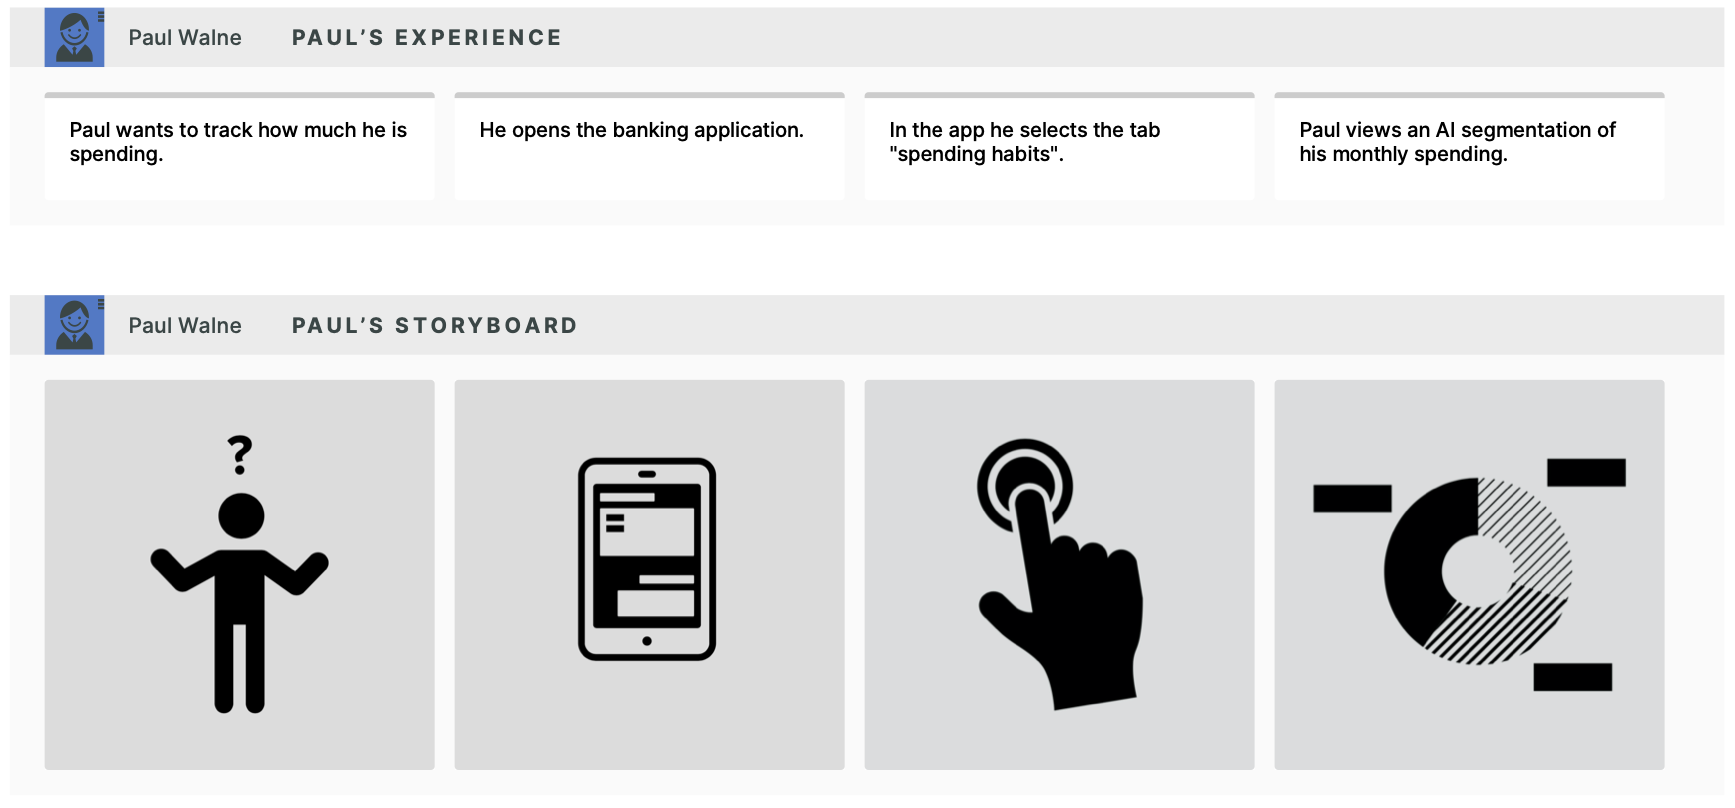 Visualization of a customer customer experience when using a banking app